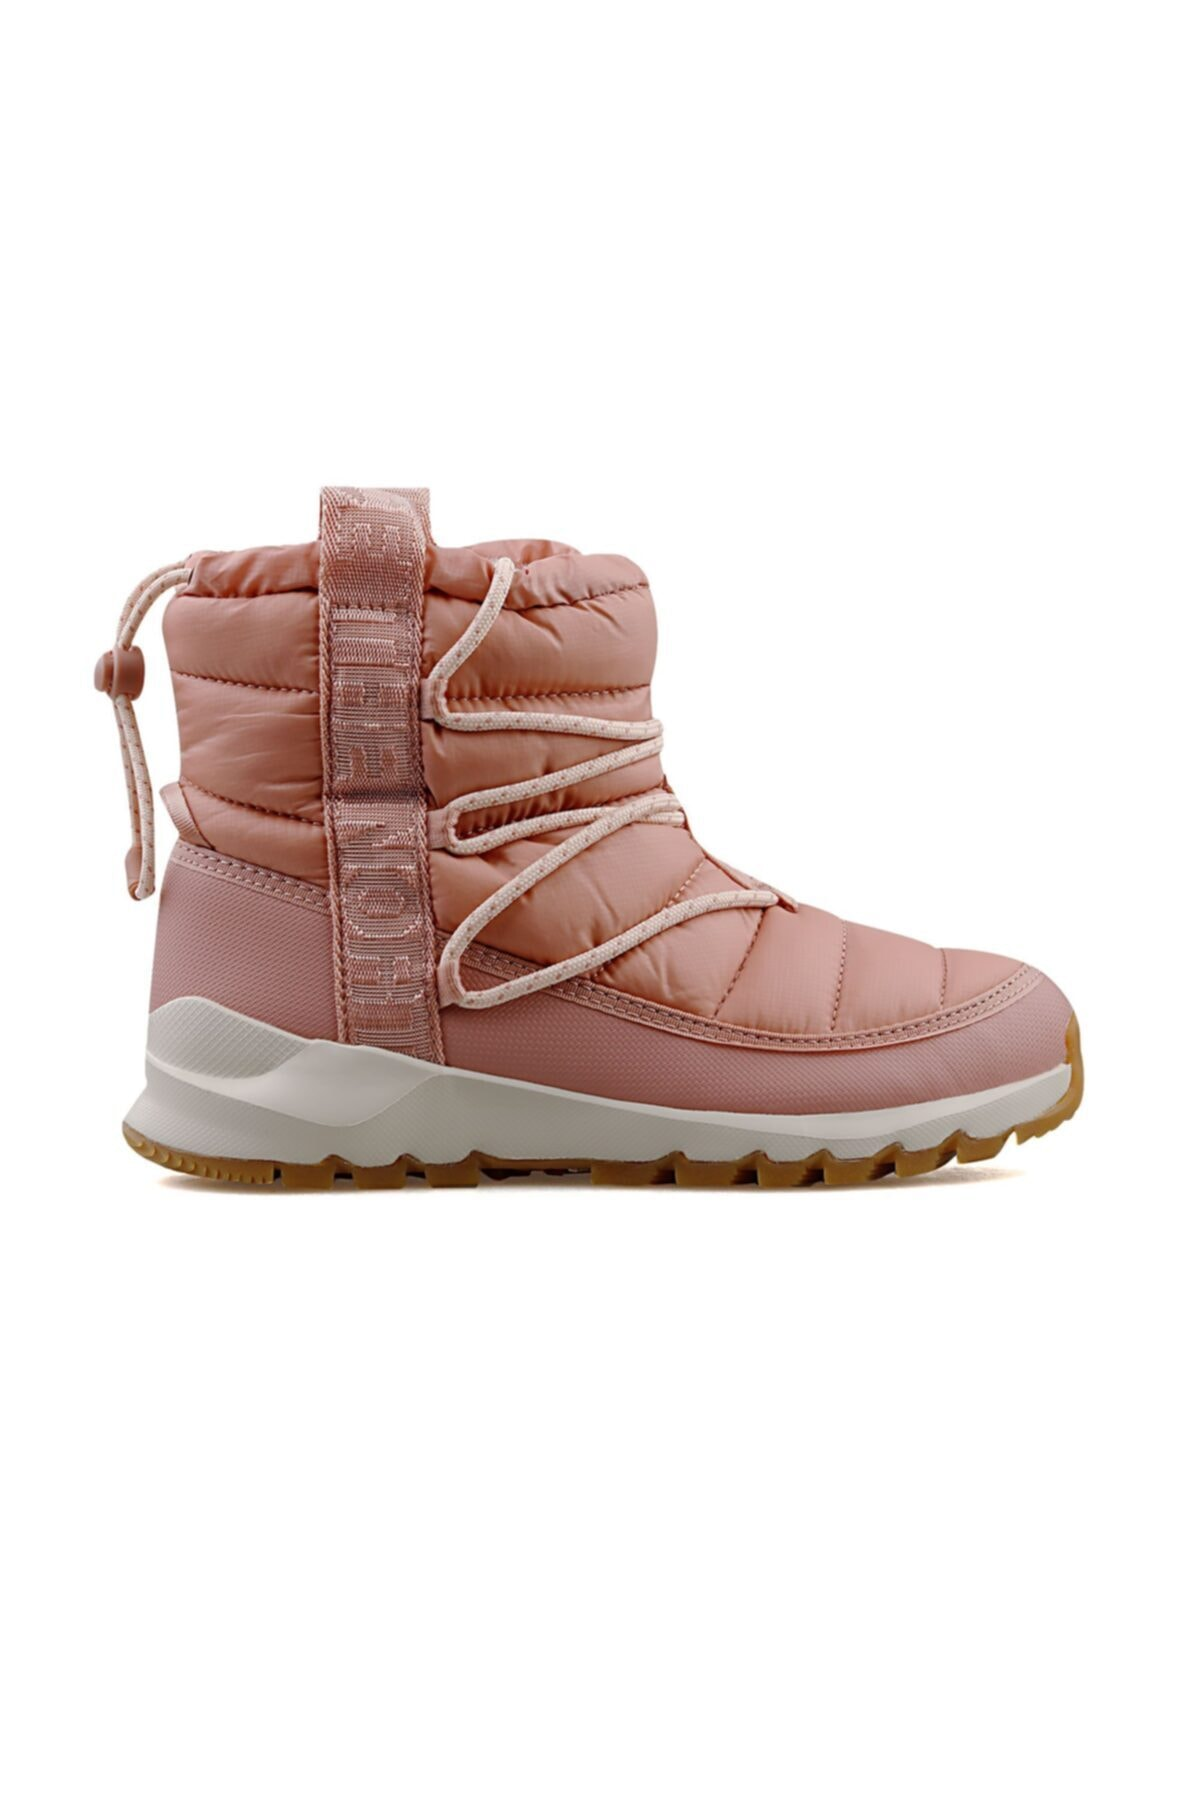 THE NORTH FACE W THERMOBALL LACE 3 NF0A4AZGVCJ1 1